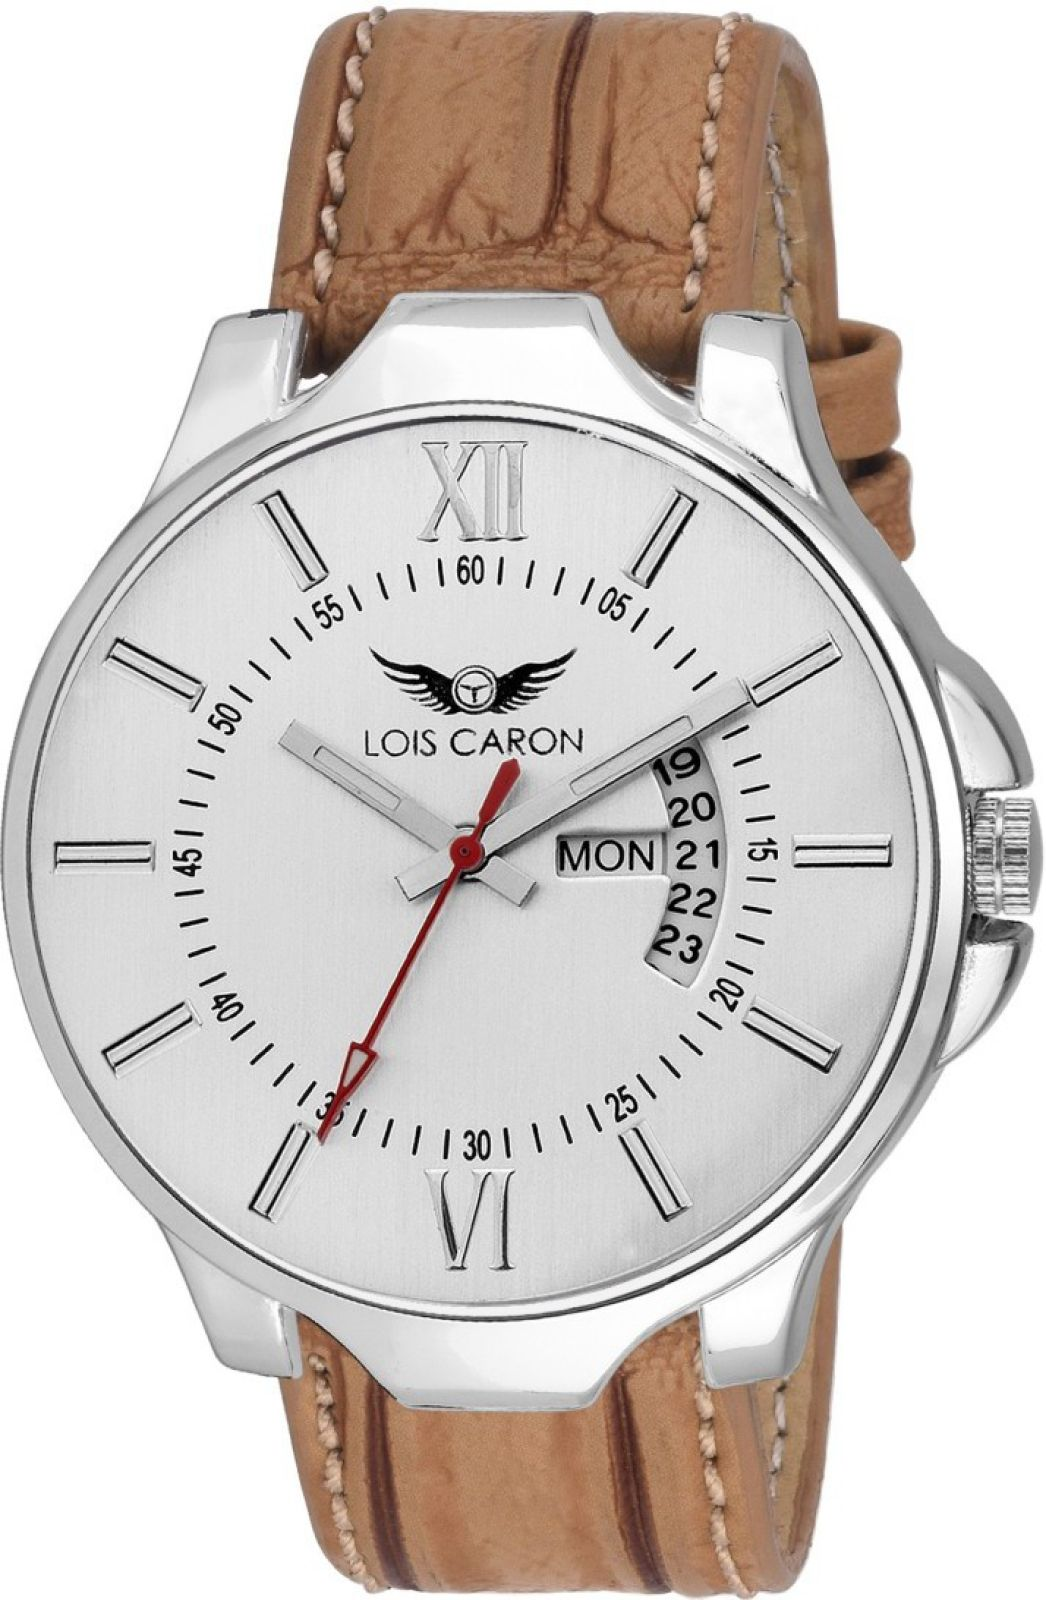 Lois Caron LCS-4116 WHITE DAY & DATE SERIES SE CROCO STRAP DAY AND DATE FUNCTIONING Watch - For Men